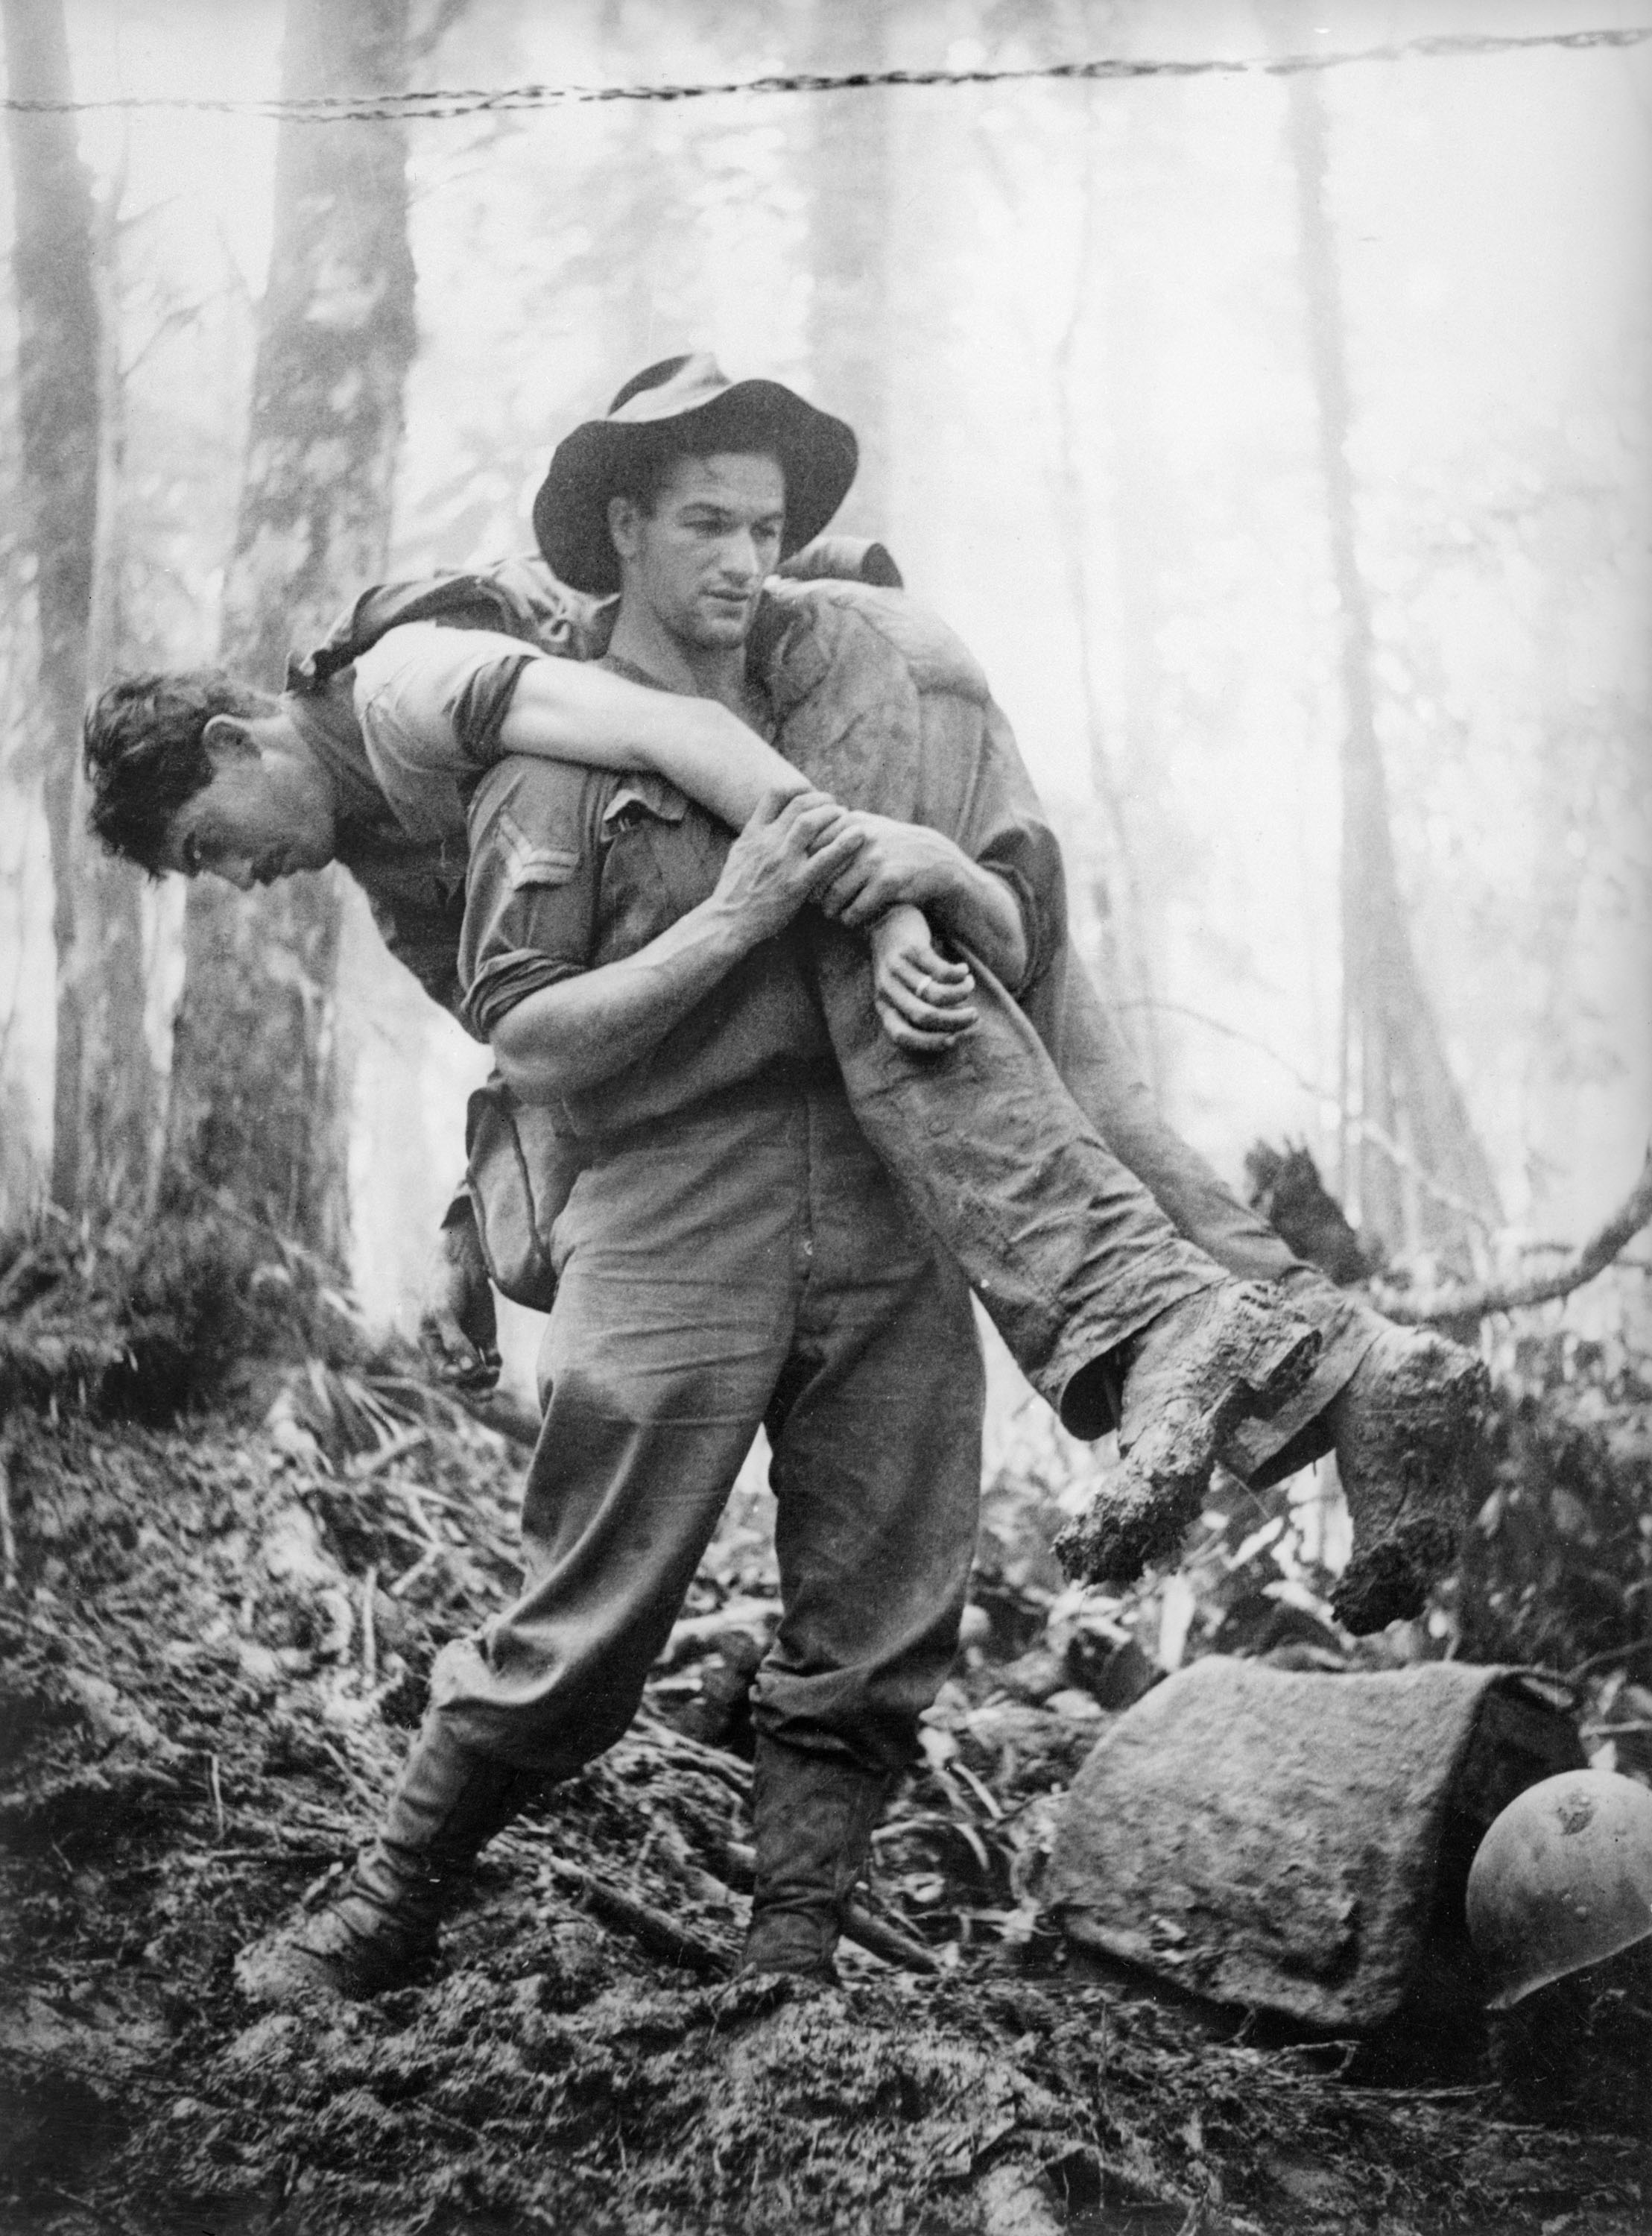 my fight in the kokoda campaign as an australian infantry soldier Find out about australia's military history jump to (1963-66) which represent significant turning points in both australian military history and the history of australia's international relations board of studies presents the major events of the kokoda campaign and describes.